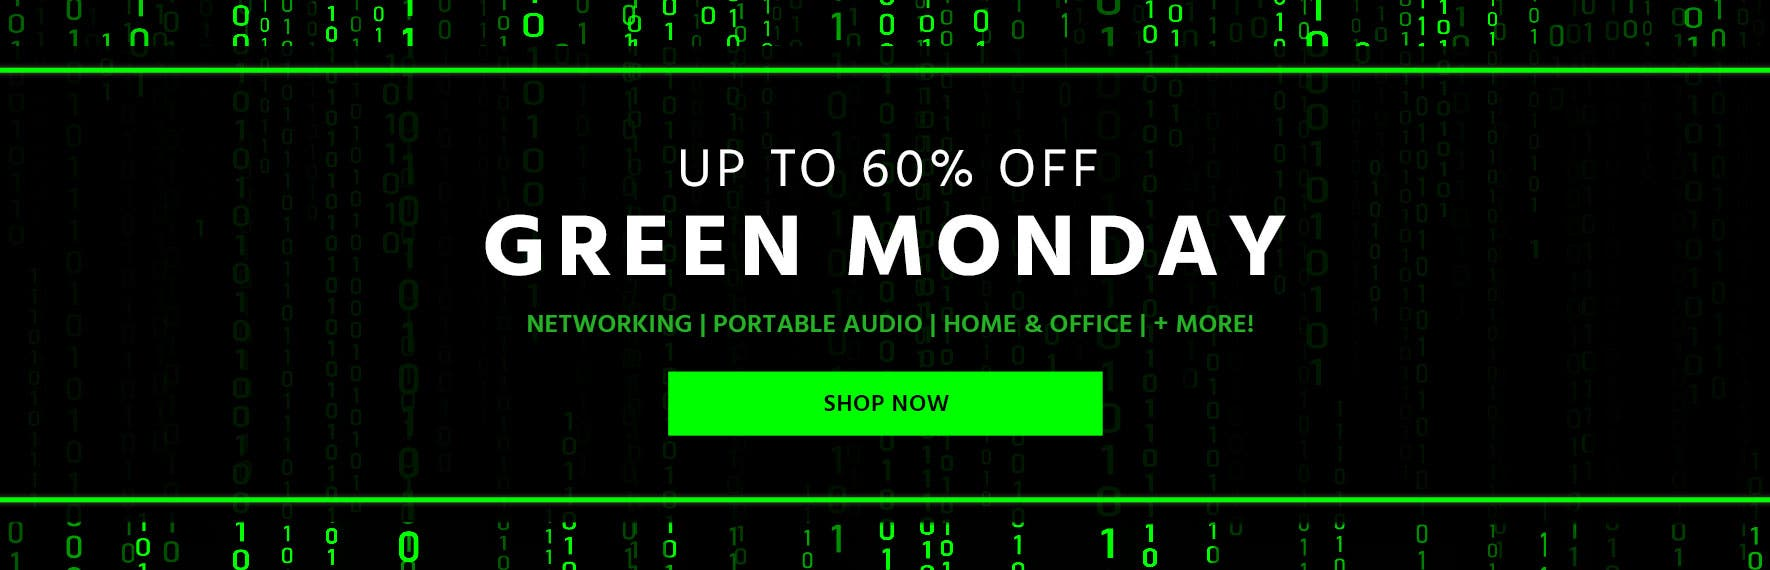 Up to 60% Off, Green Monday. Networking, portable audio, home and office, + more. shop now